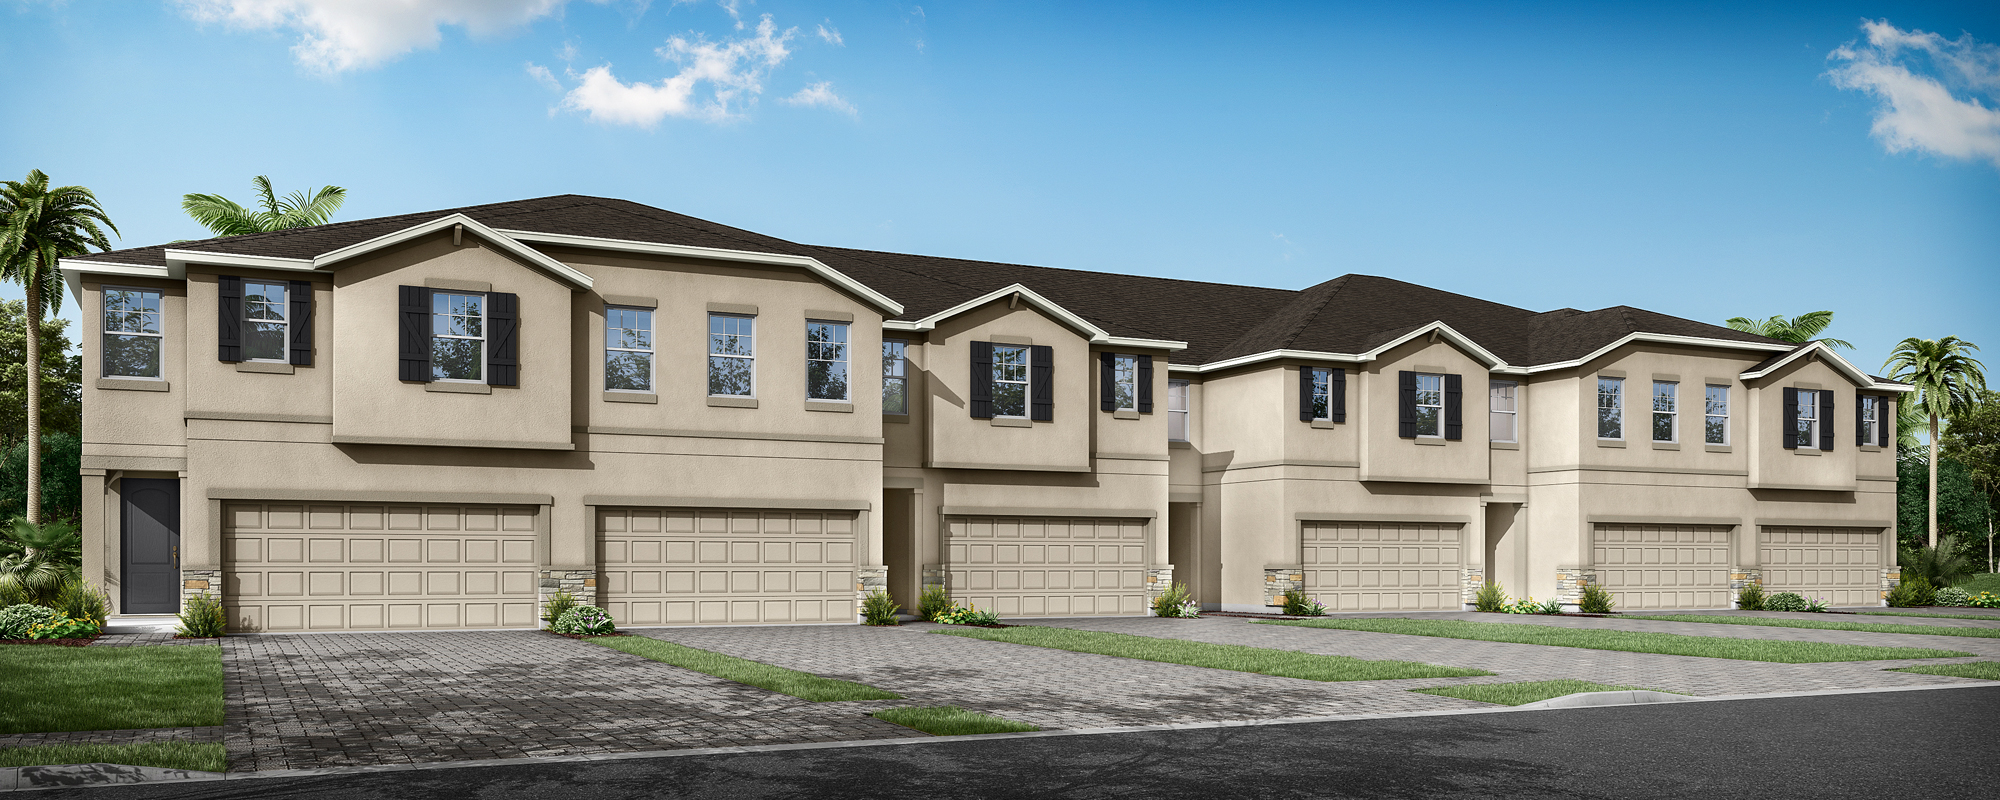 Sebring Plan TownHomes at Volanti in Wesley Chapel Florida by Mattamy Homes